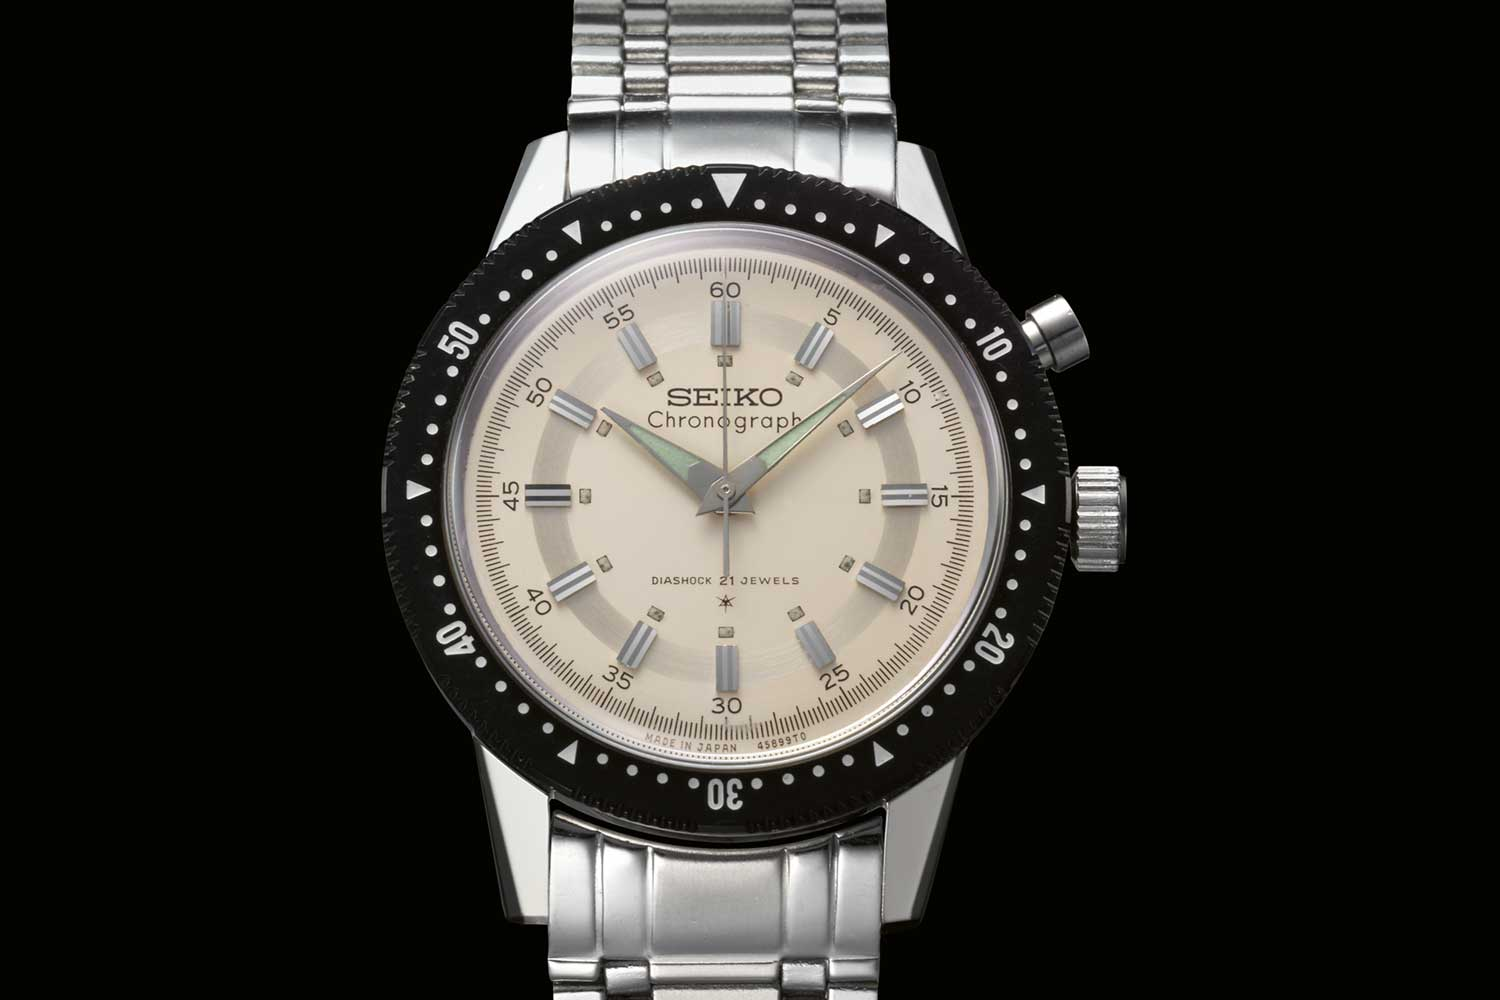 Seiko's first chronograph, the reference 5719A-45899 'Crown' Chronograph.